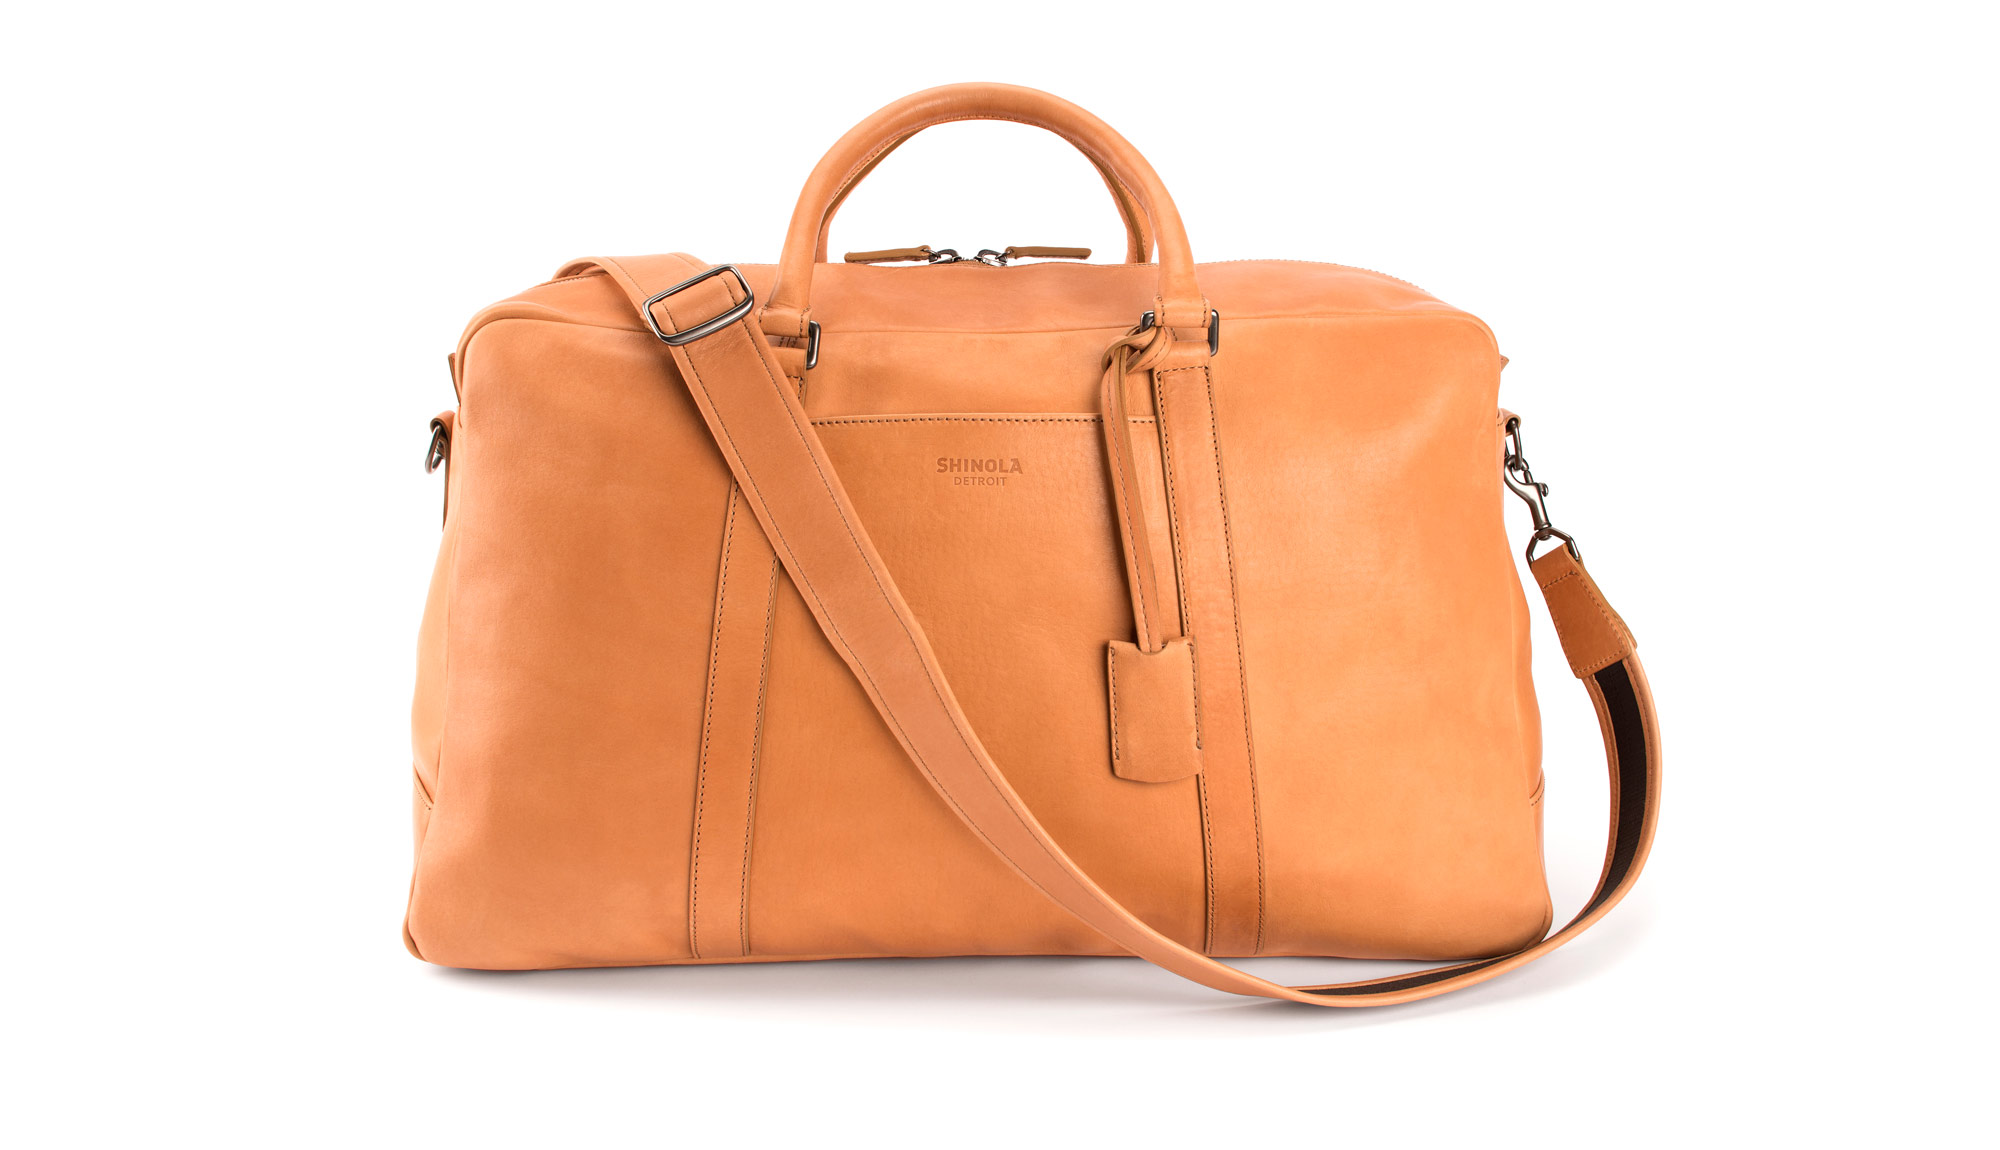 Shinola Signature Duffle